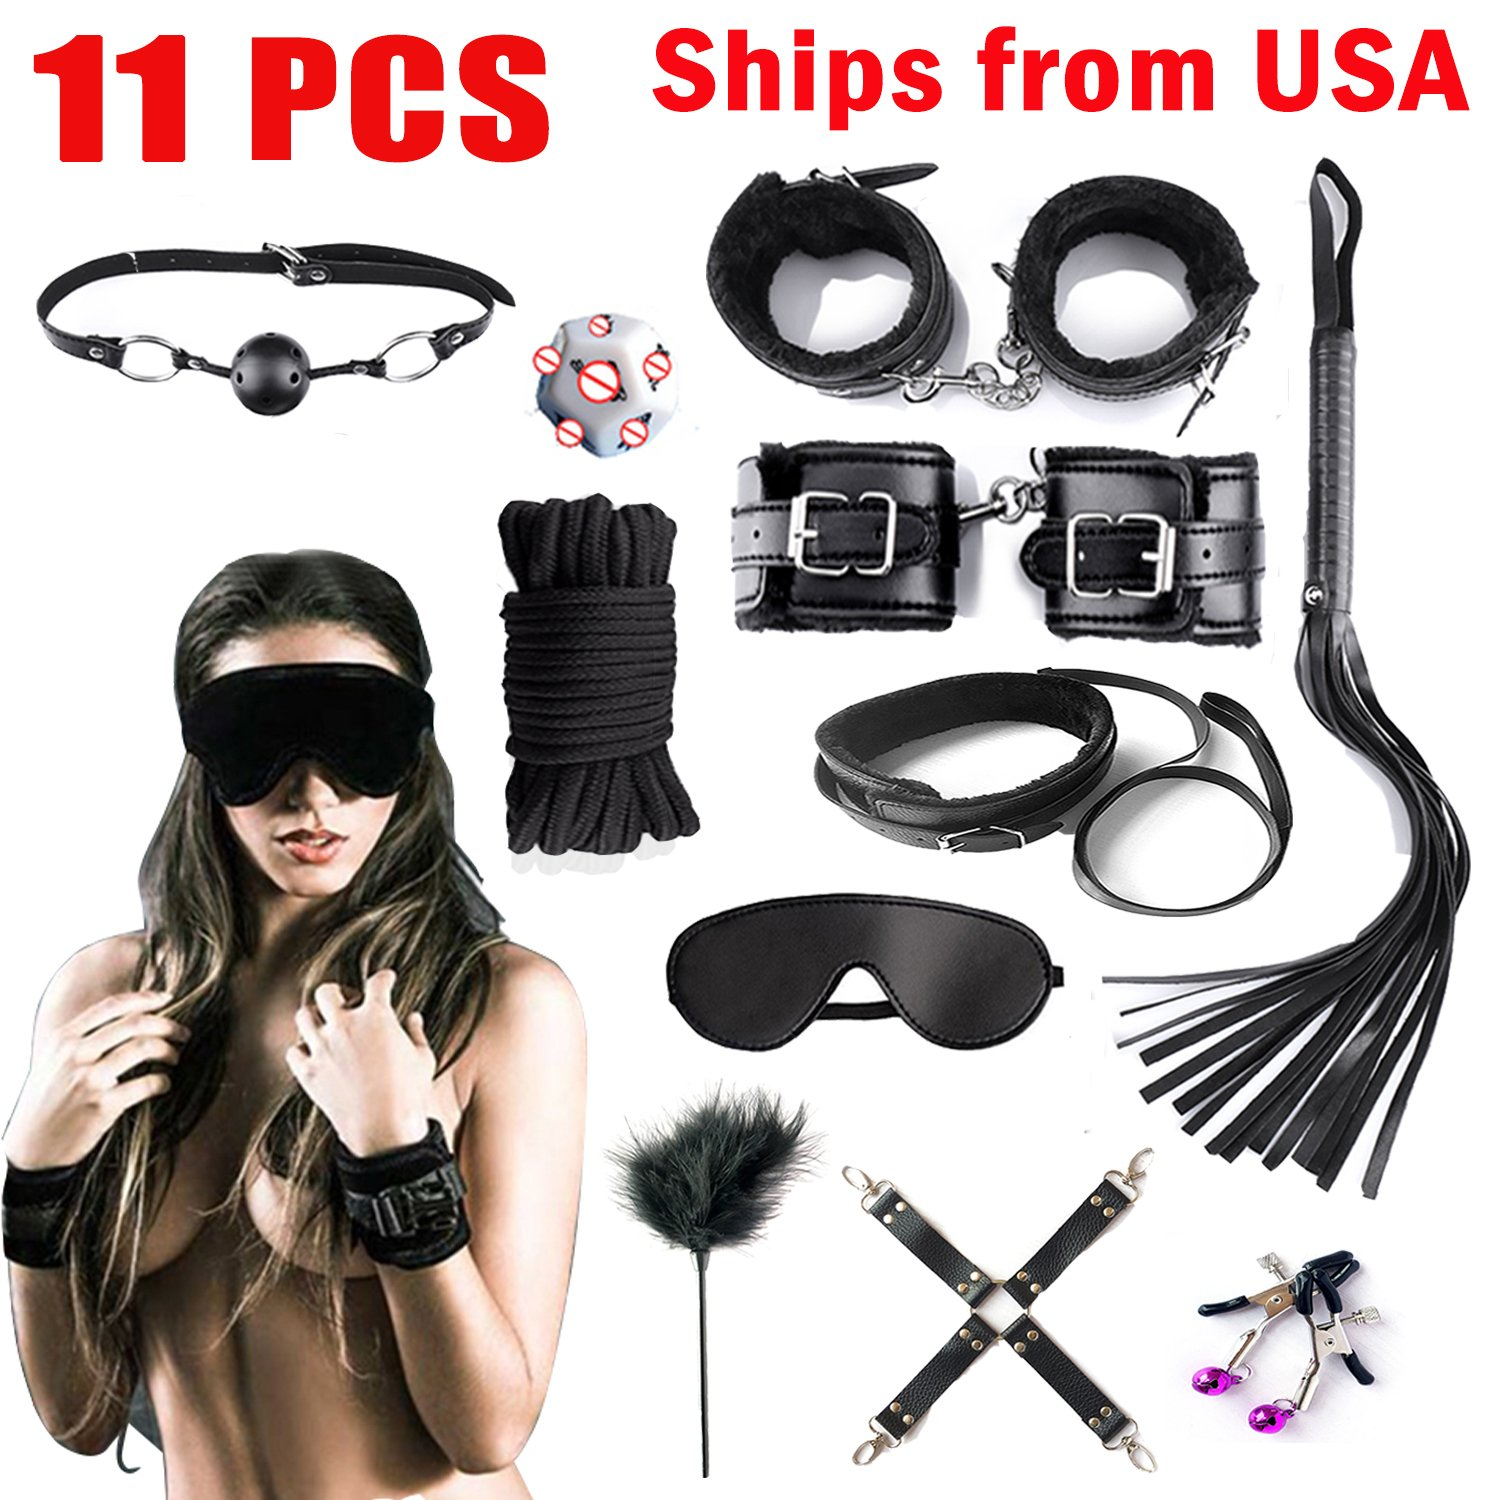 Handcuffs for Under Bed Restraint Kit Bondage Bondageromance Fetish Sex Play BDSM SM Restraining Straps Thigh Game Tie up Mattress Harness Things Blindfold Whips Toys Adults Women Men Couples